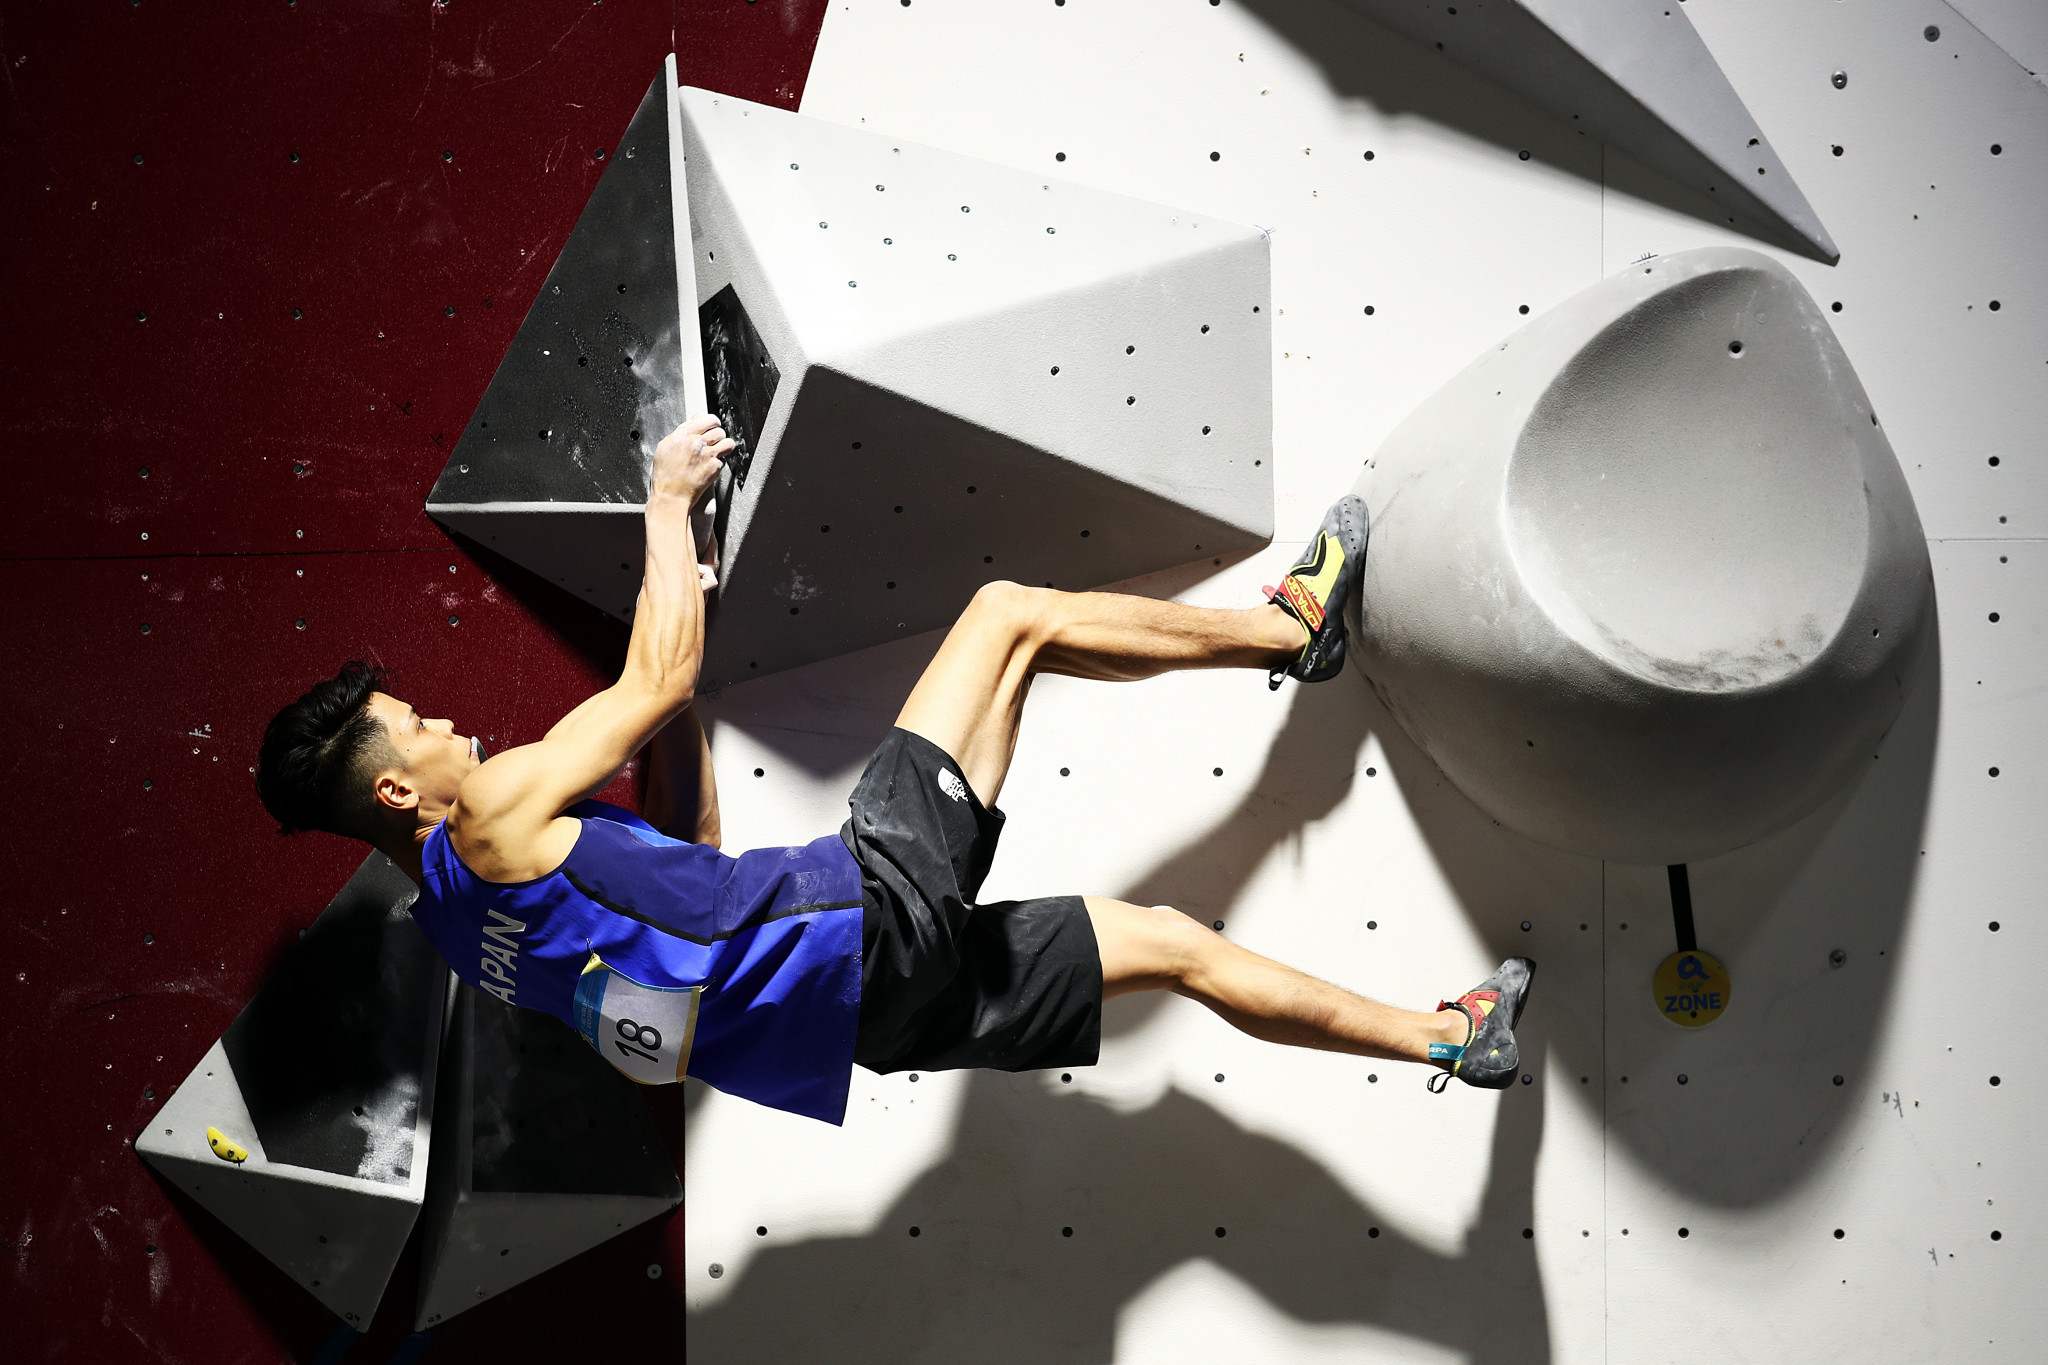 IFSC President says ANOC World Beach Games gave climbers a boost en-route to Tokyo 2020